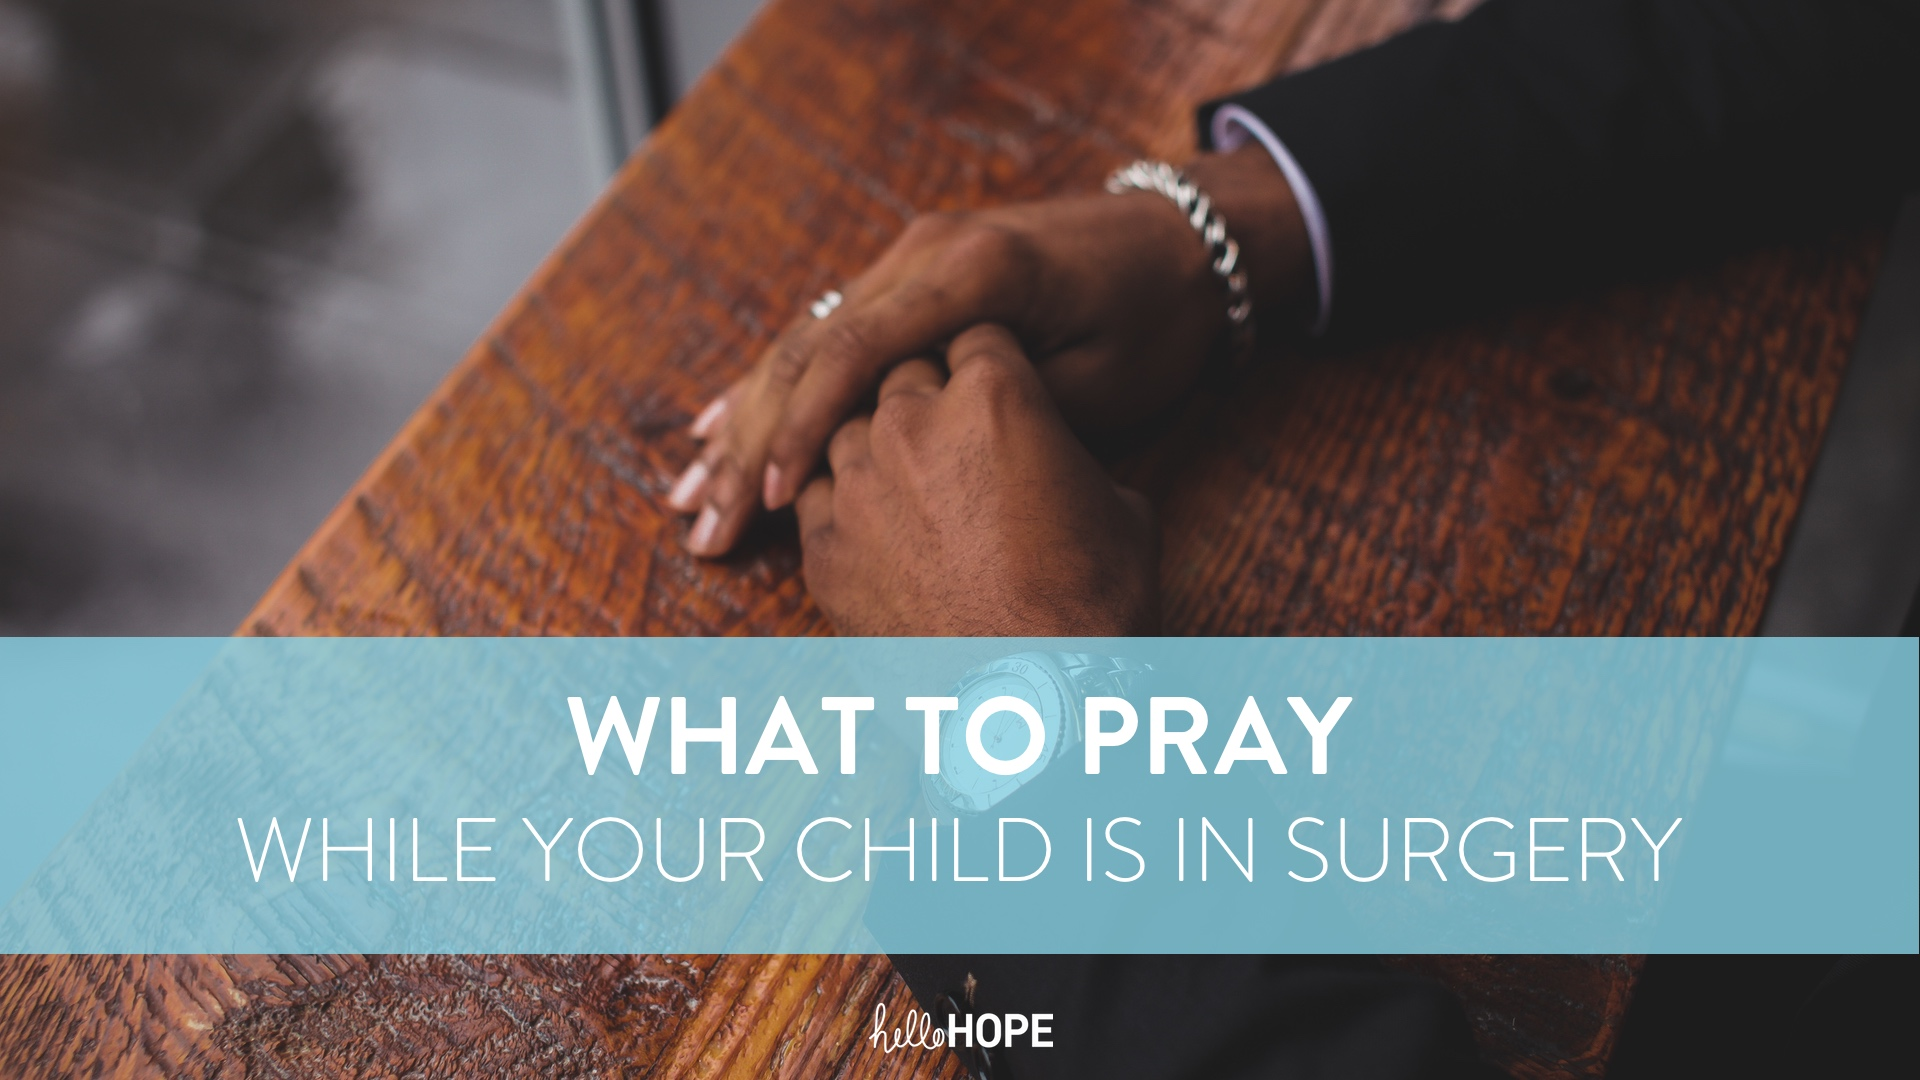 Hands on table | What to pray while your child is in surgery | helloHOPE Resource